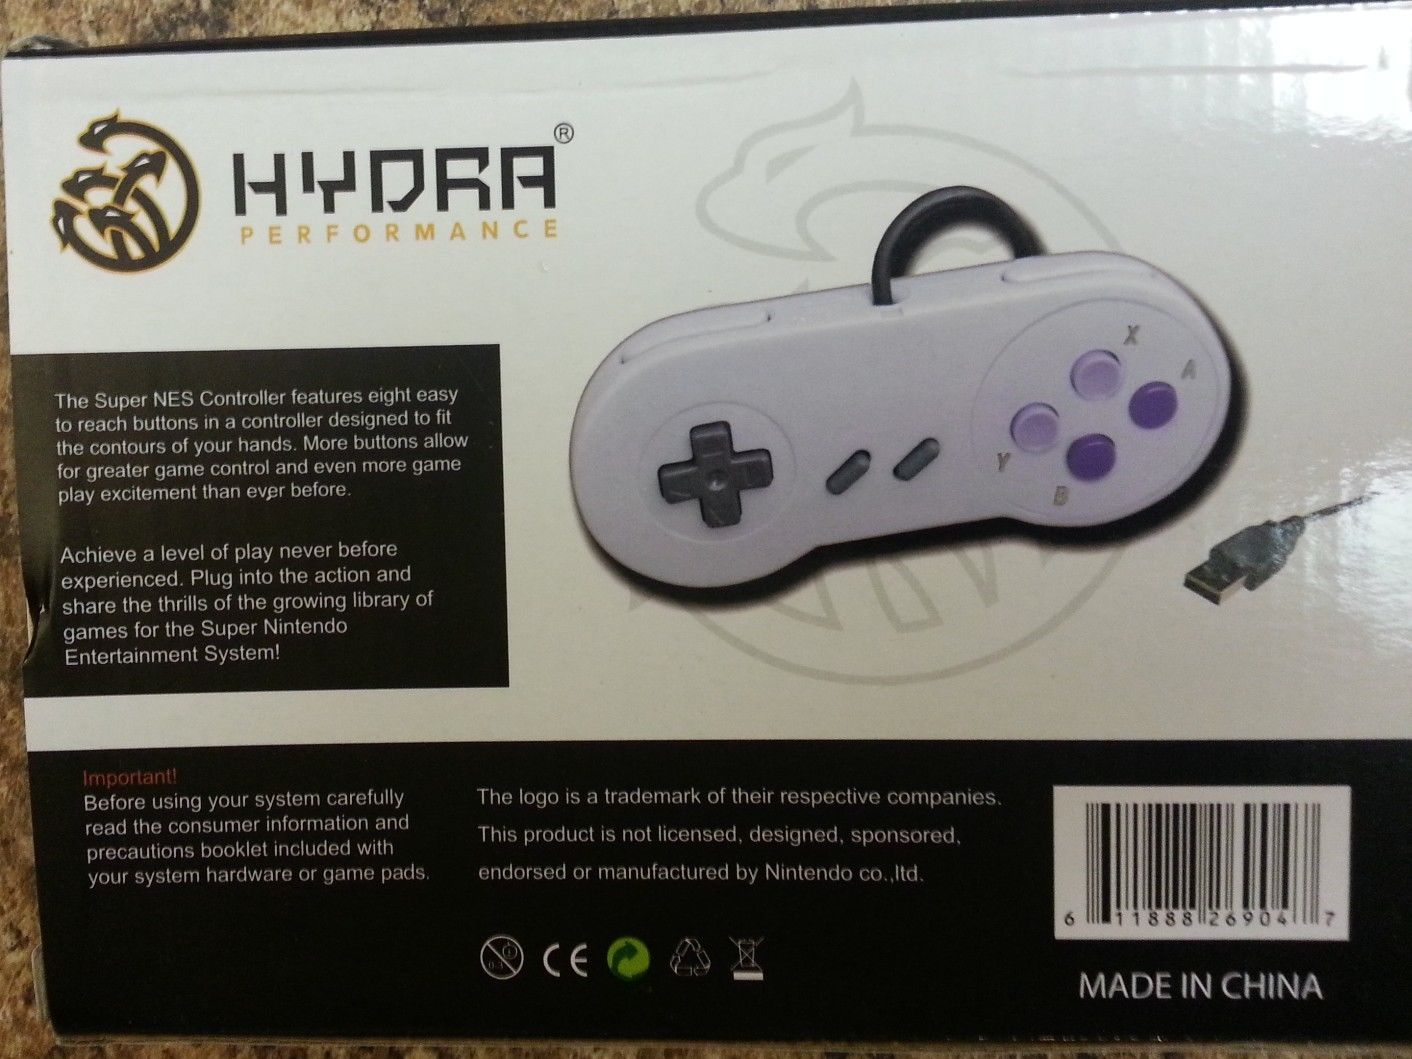 hydra video game system